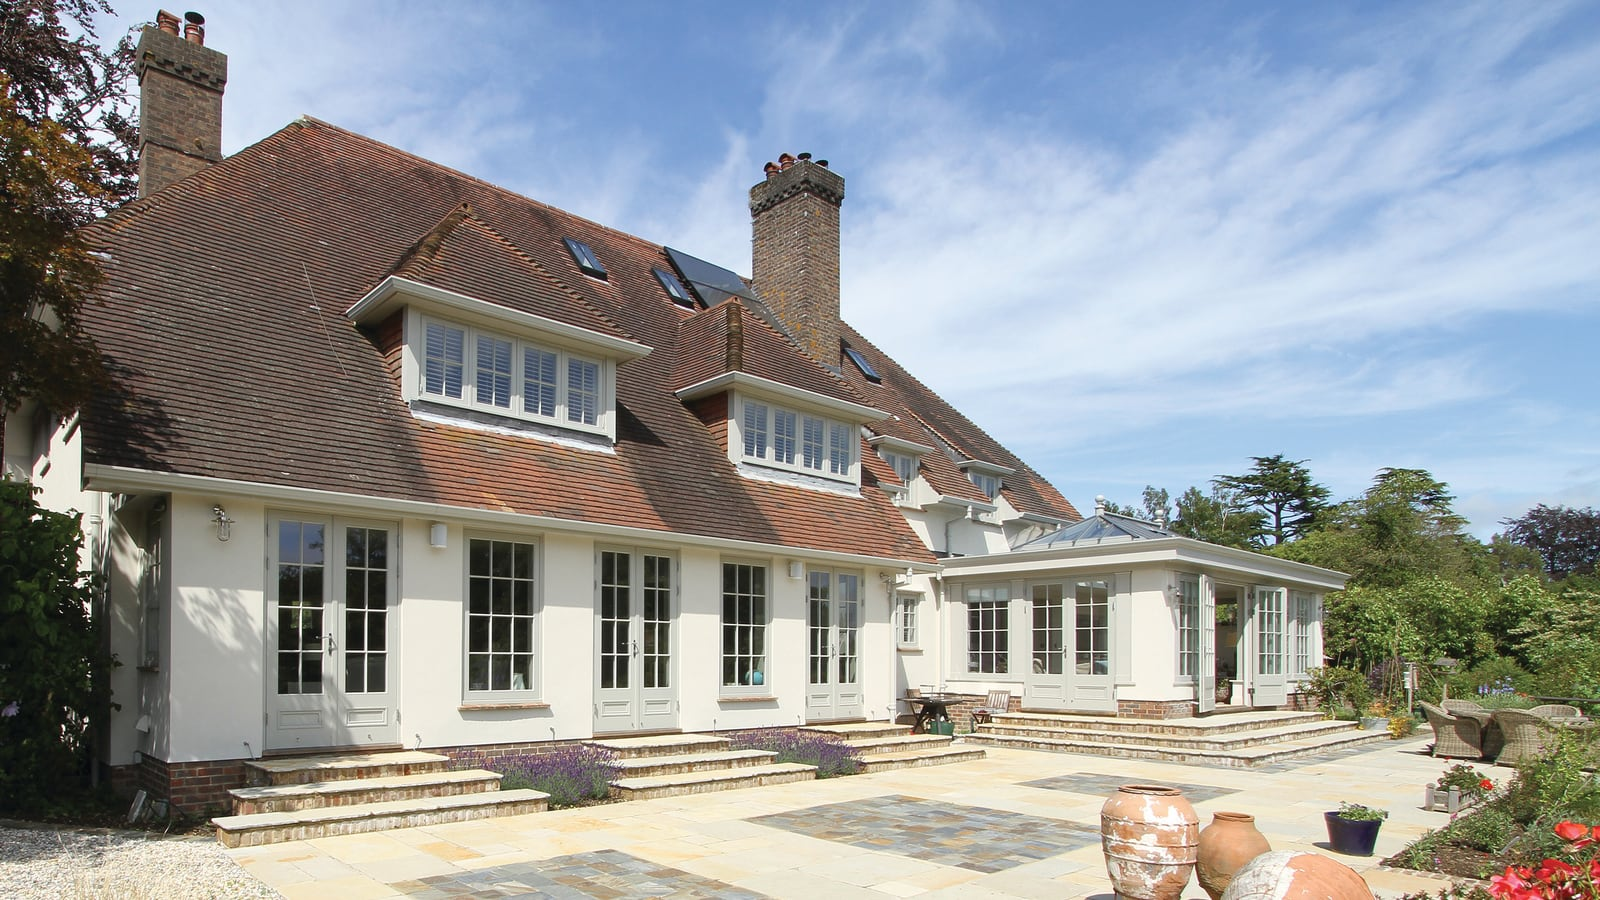 Large full-length casement windows with French doors to compliment the rear of the house